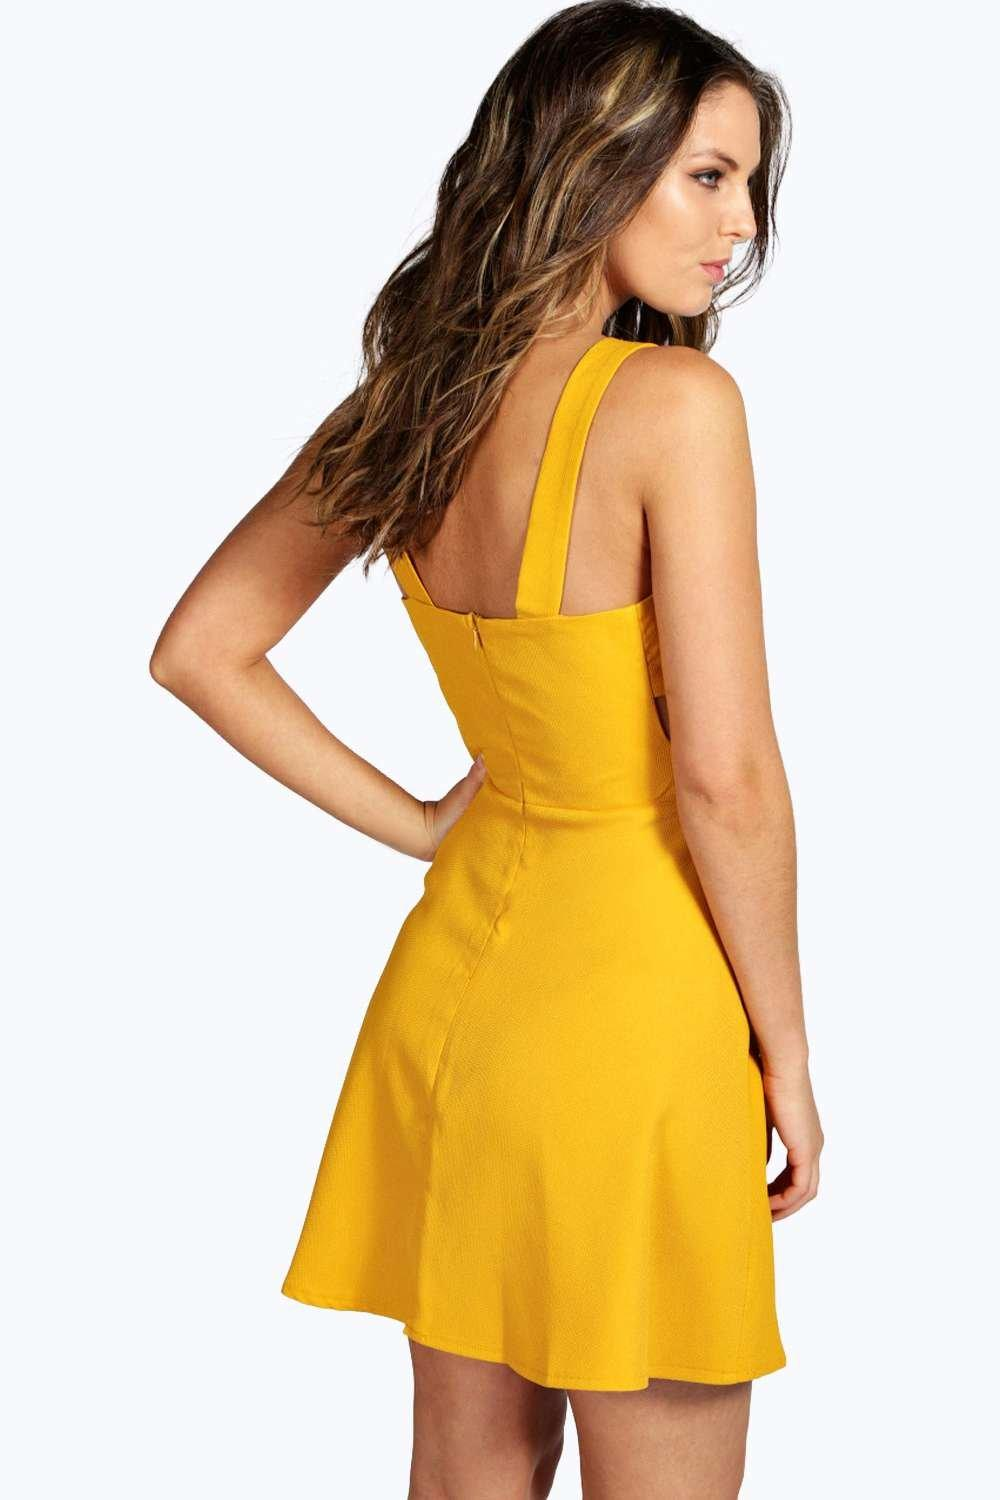 Ebay yellow skater dress pic